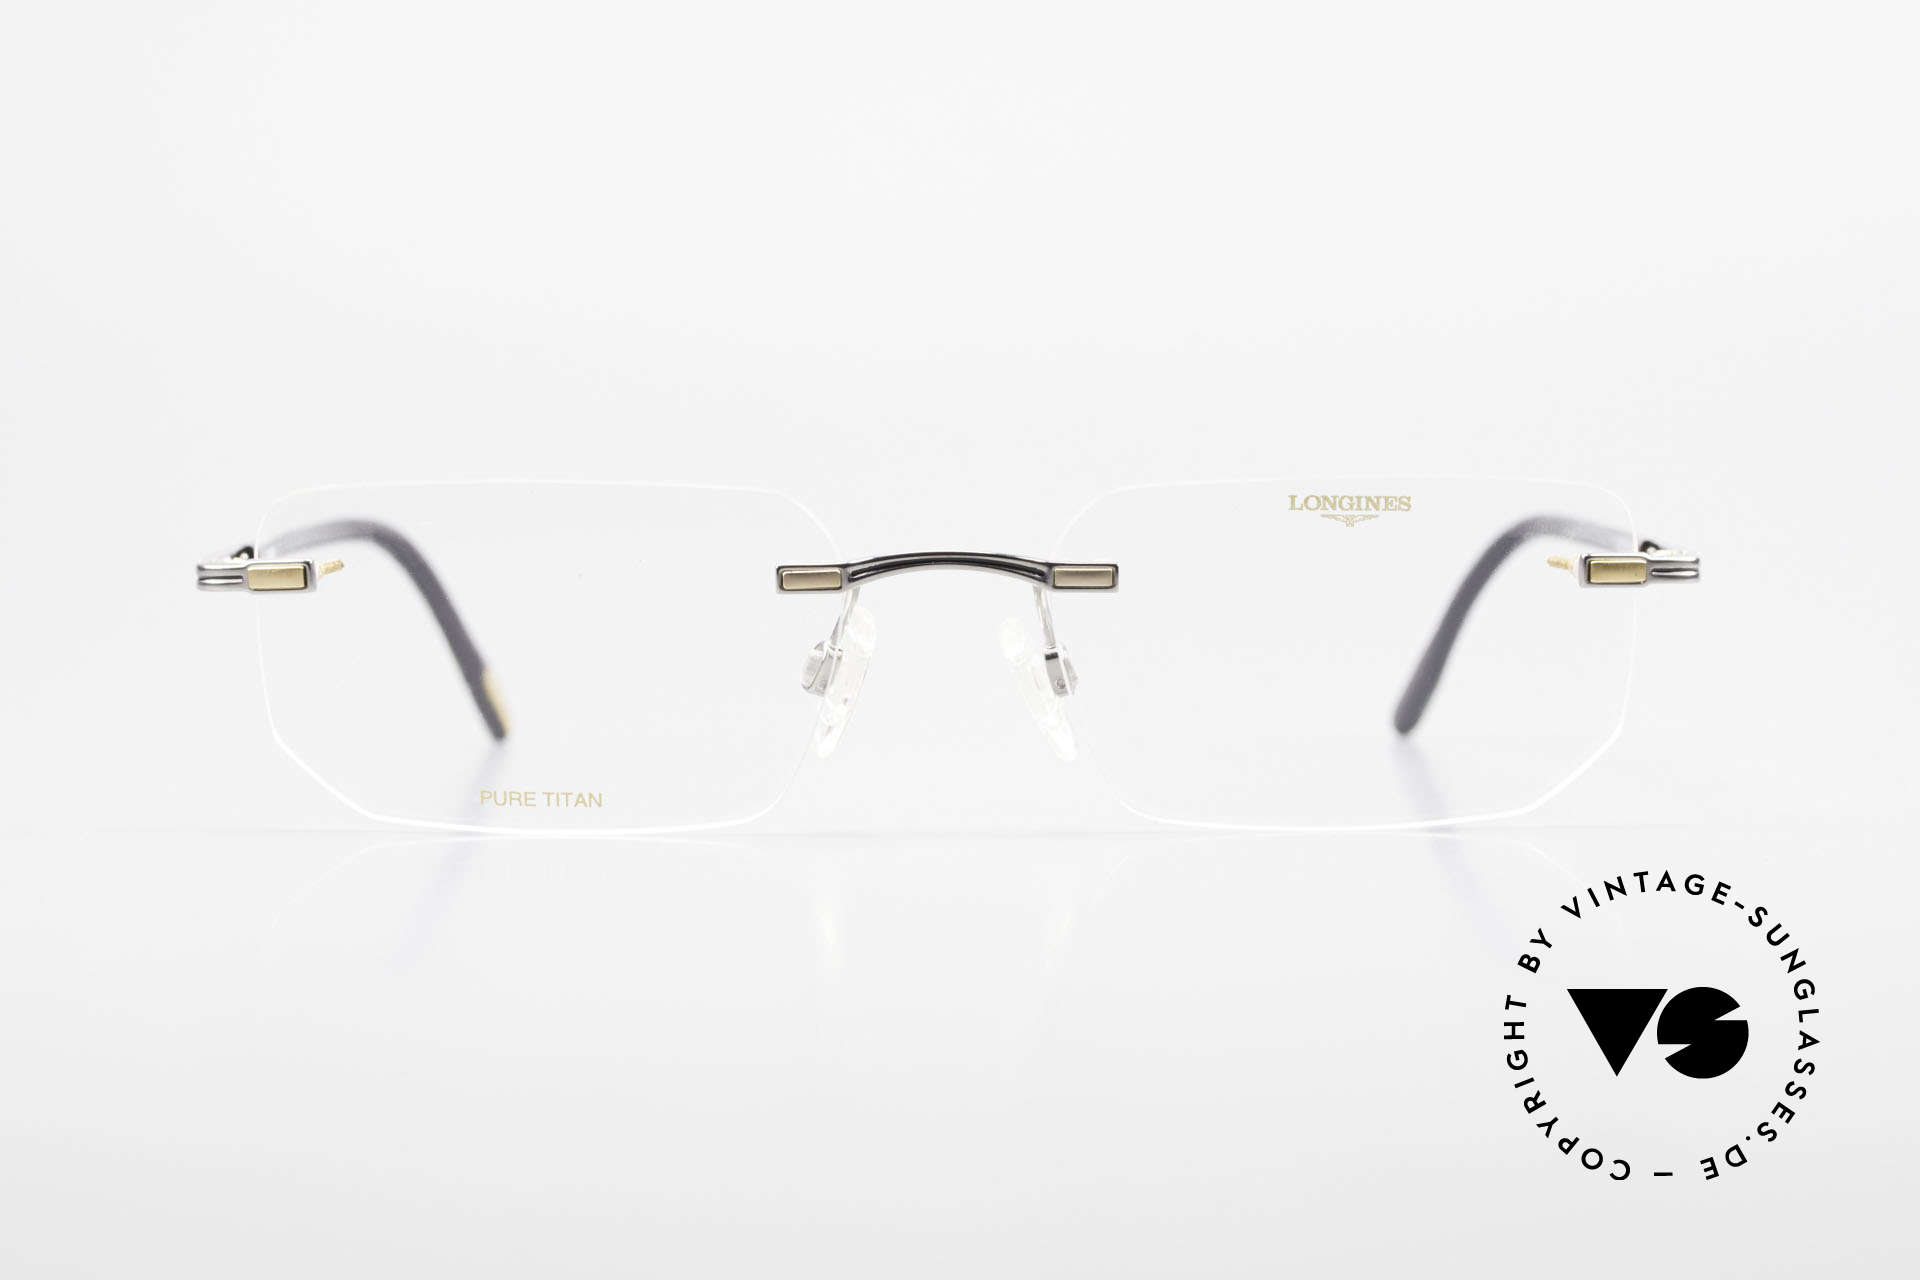 Longines 4238 Rimless 90's Eyeglasses Men, full frame shows with many small quality features, Made for Men